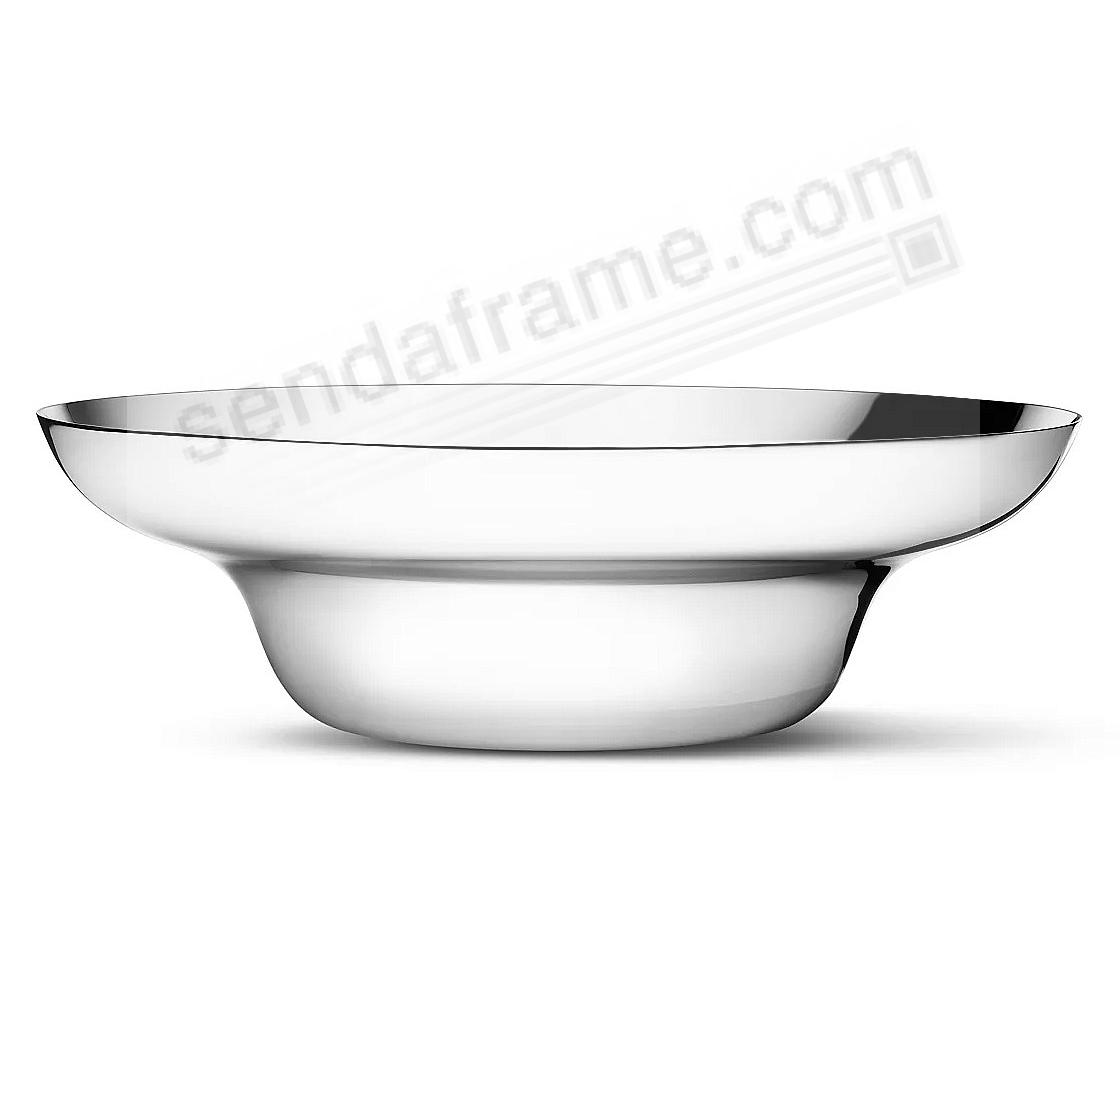 The ALFREDO Salad Bowl in Stainless Steel by Georg Jensen®